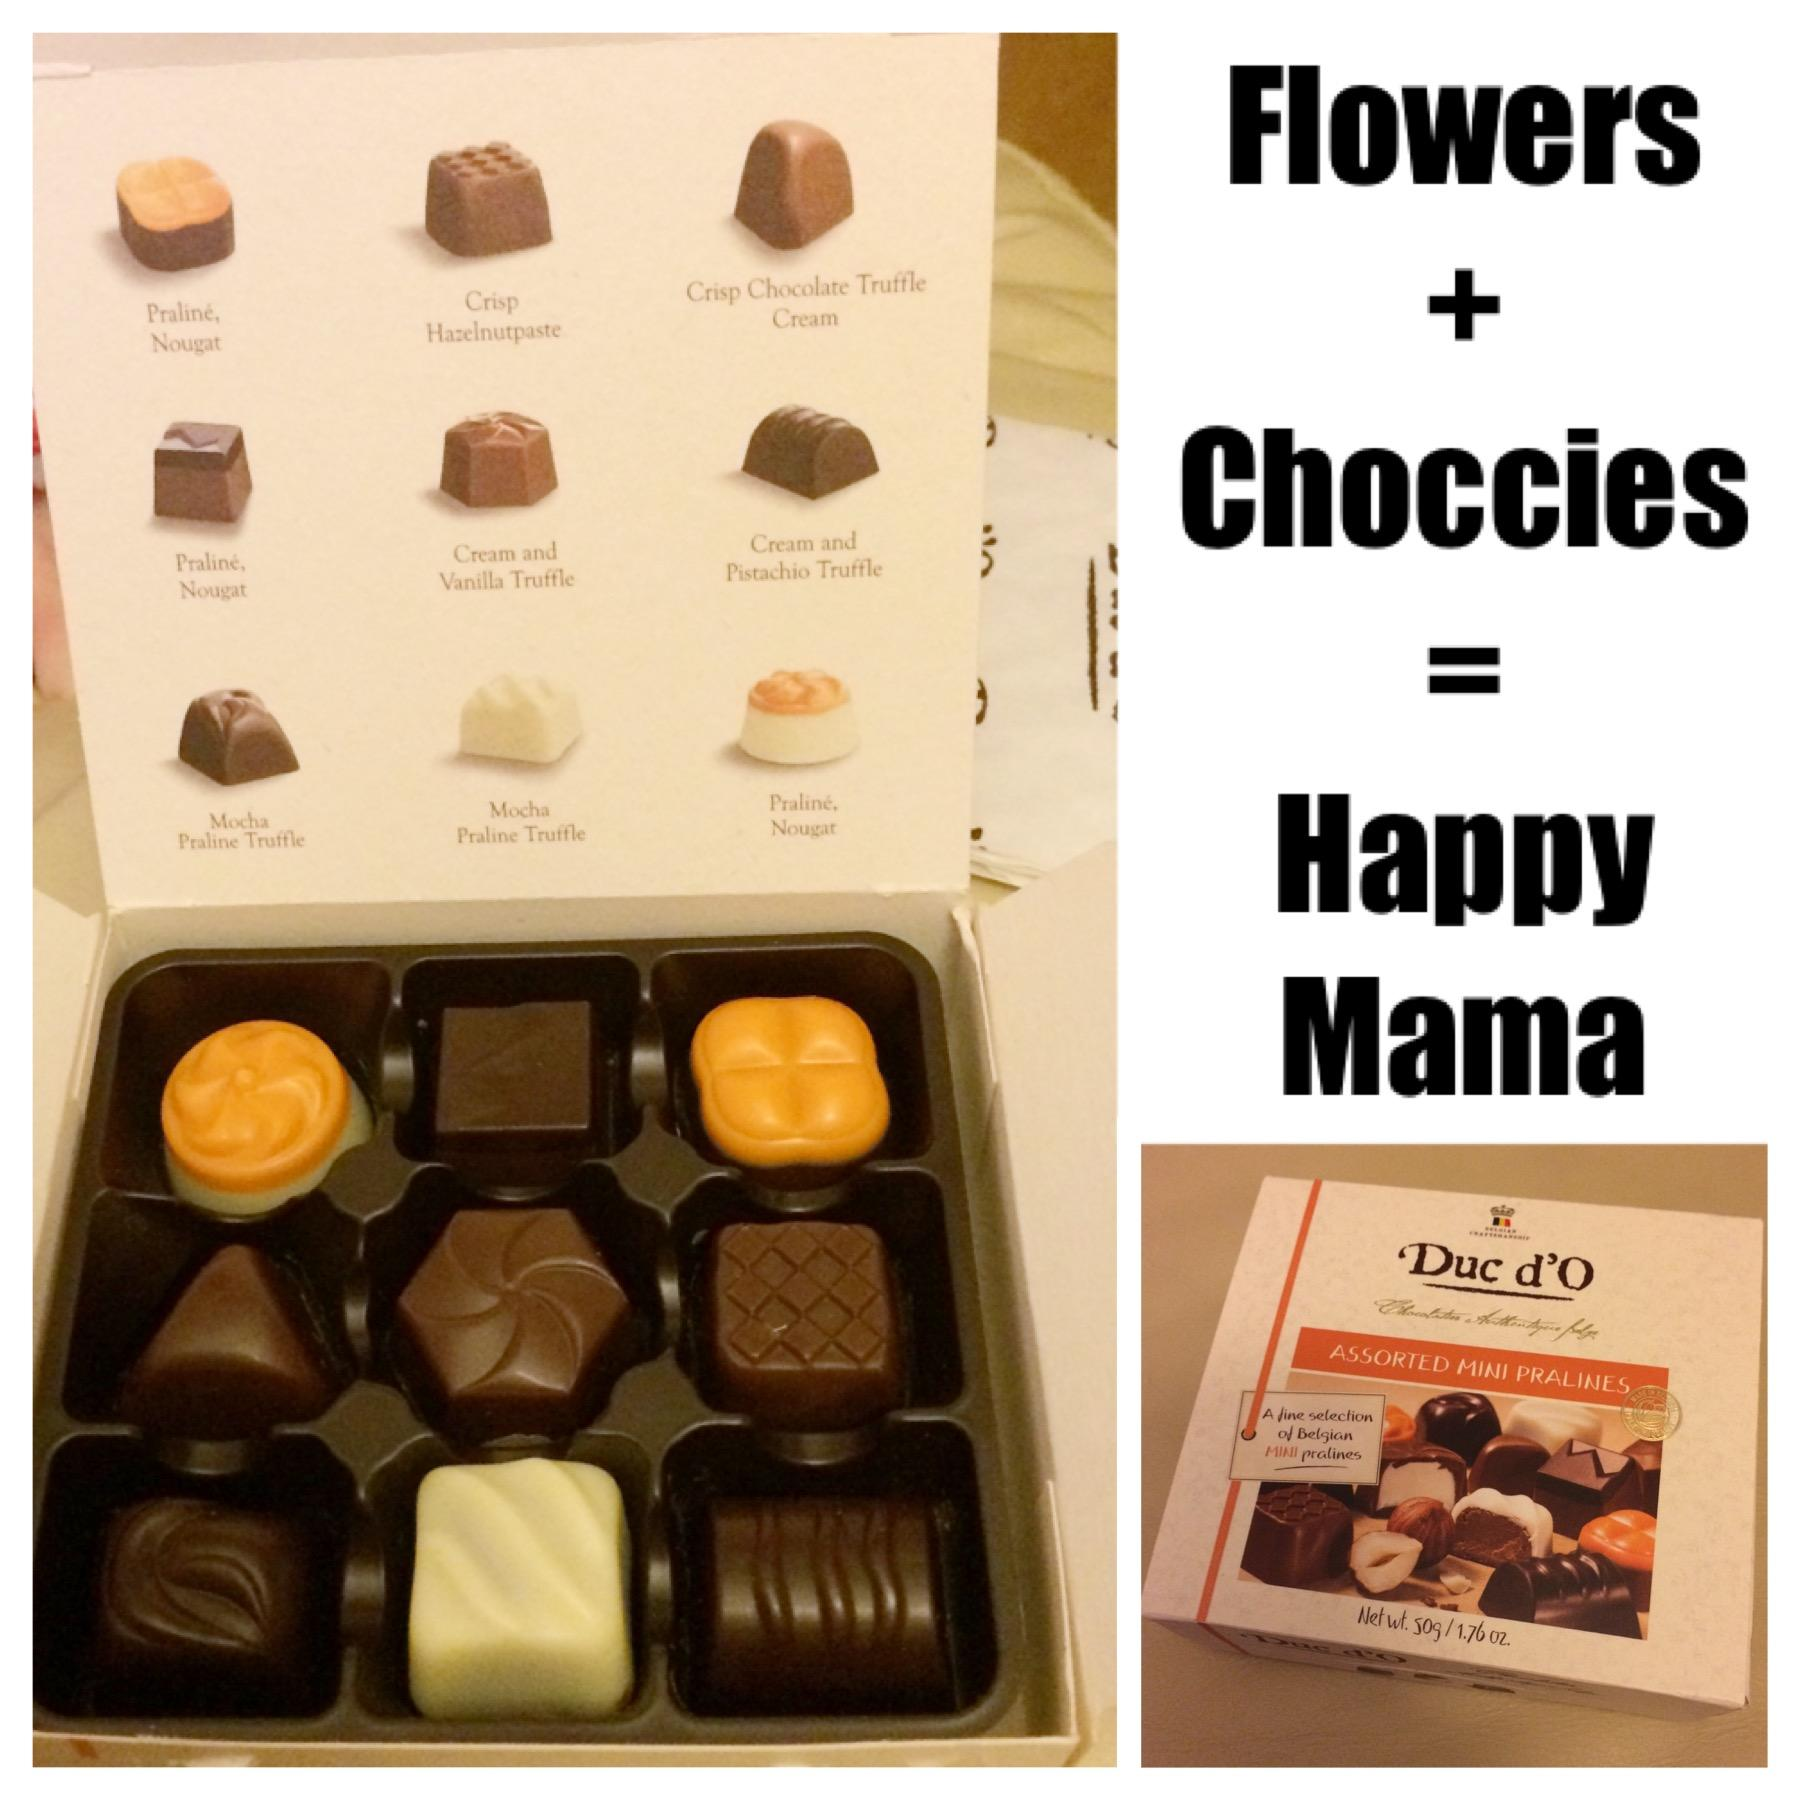 Flowers For Mother's Day - free chocolates